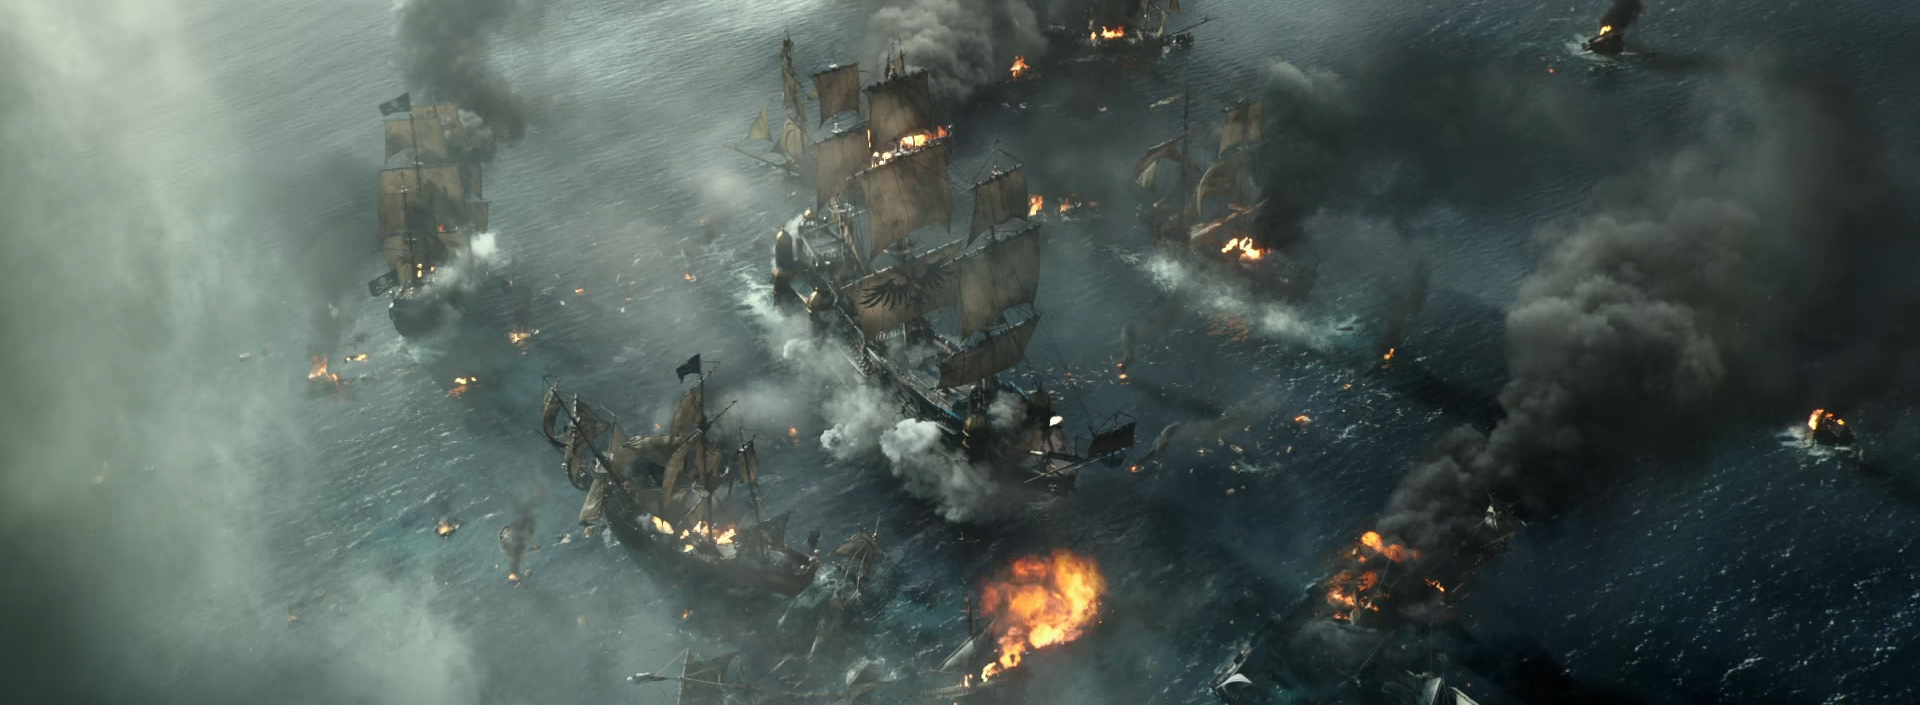 Pirates of the Caribbean: Dead Men Tell No Tales. Image Credit: Disney.